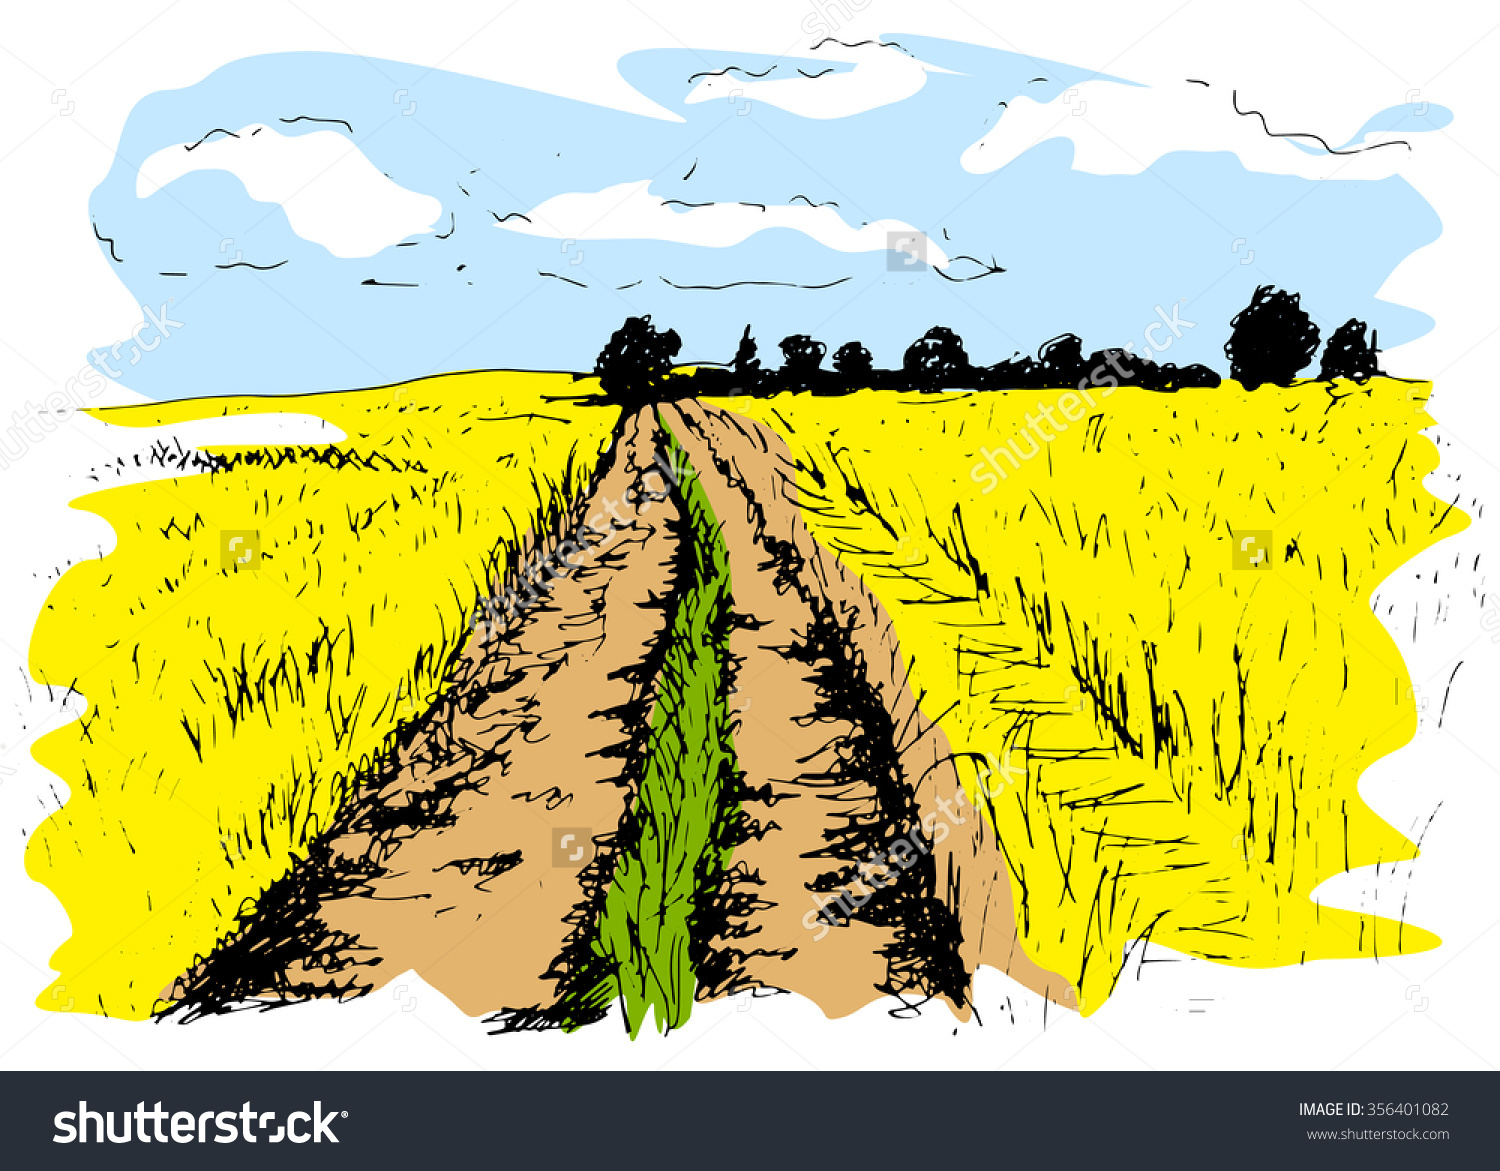 Colored Hand Sketch Dirt Road Stock Vector 356401082.